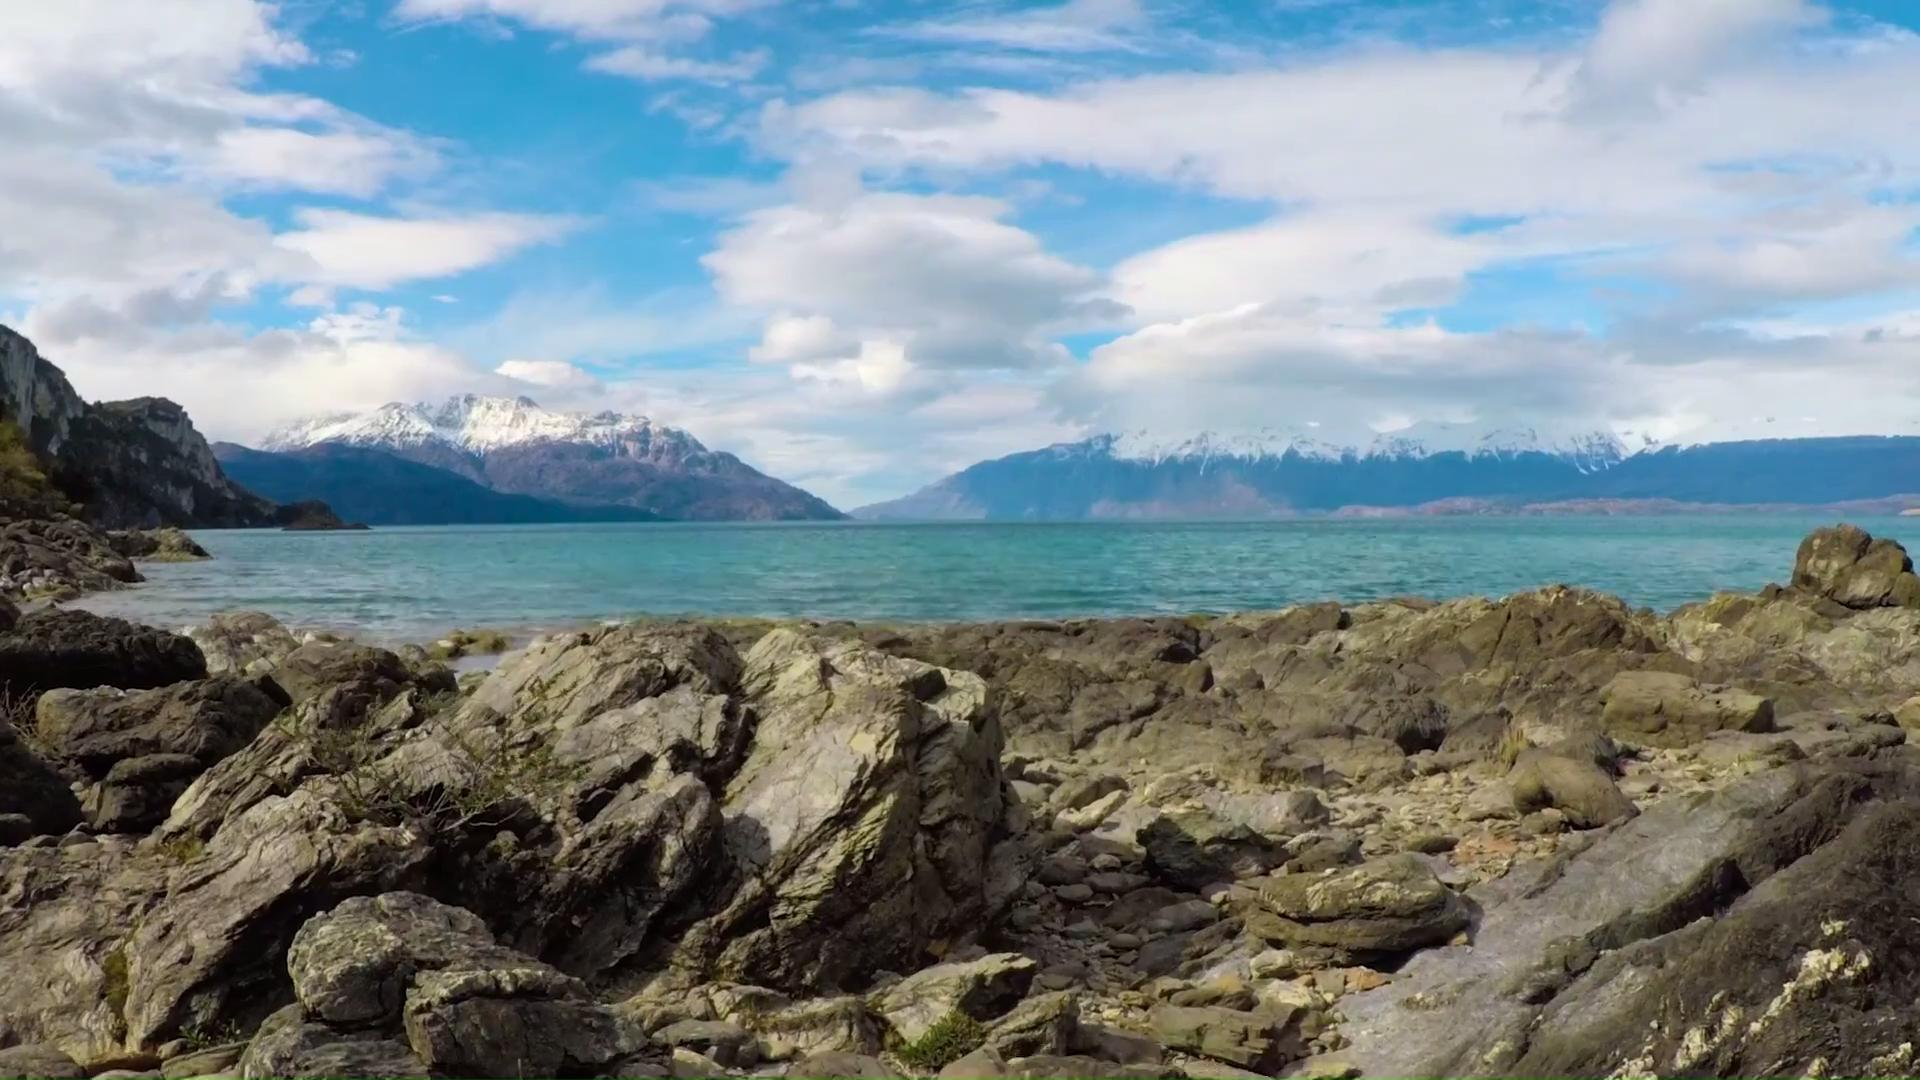 Chile's epic Route of Parks is now open